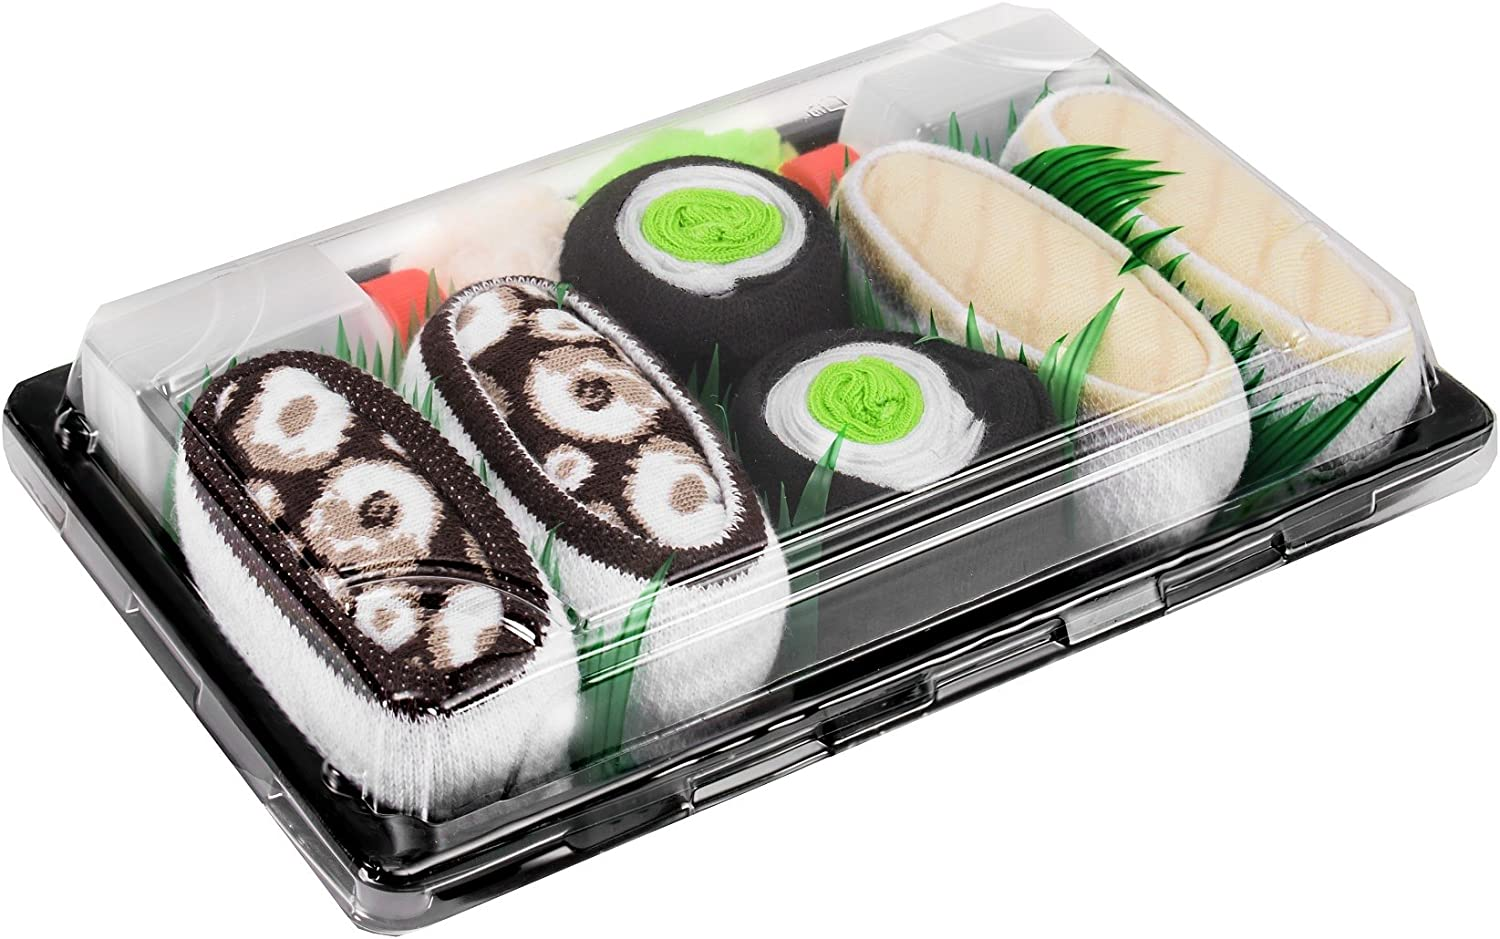 SUSHI SOCKS BOX 3 pairs Butterfish Cucumber Octopus FUNNY GIFT  Made in Europe